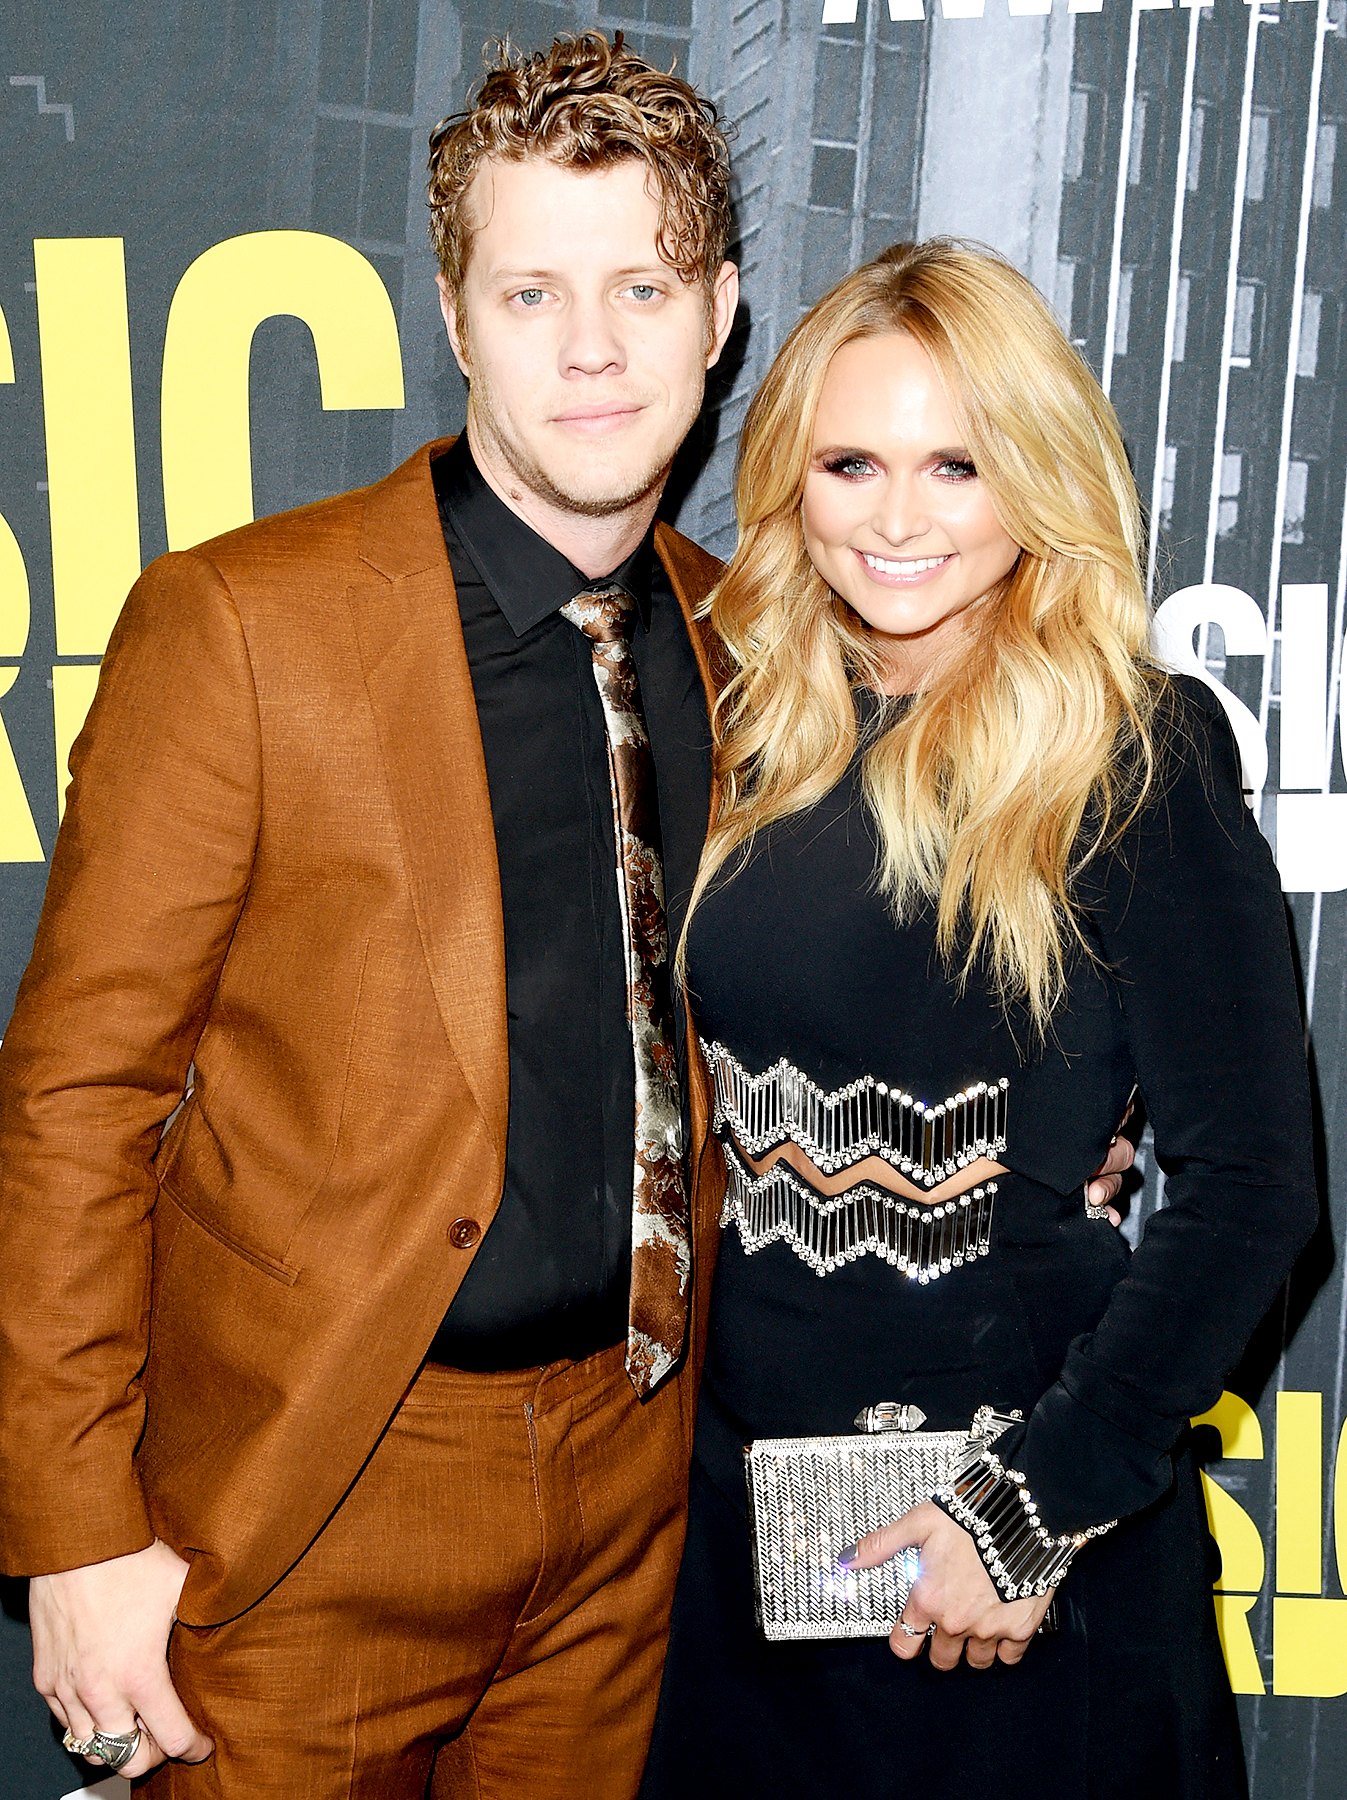 Anderson East and Miranda Lambert attend the 2017 CMT Music Awards at the Music City Center on June 7, 2017 in Nashville, Tennessee.